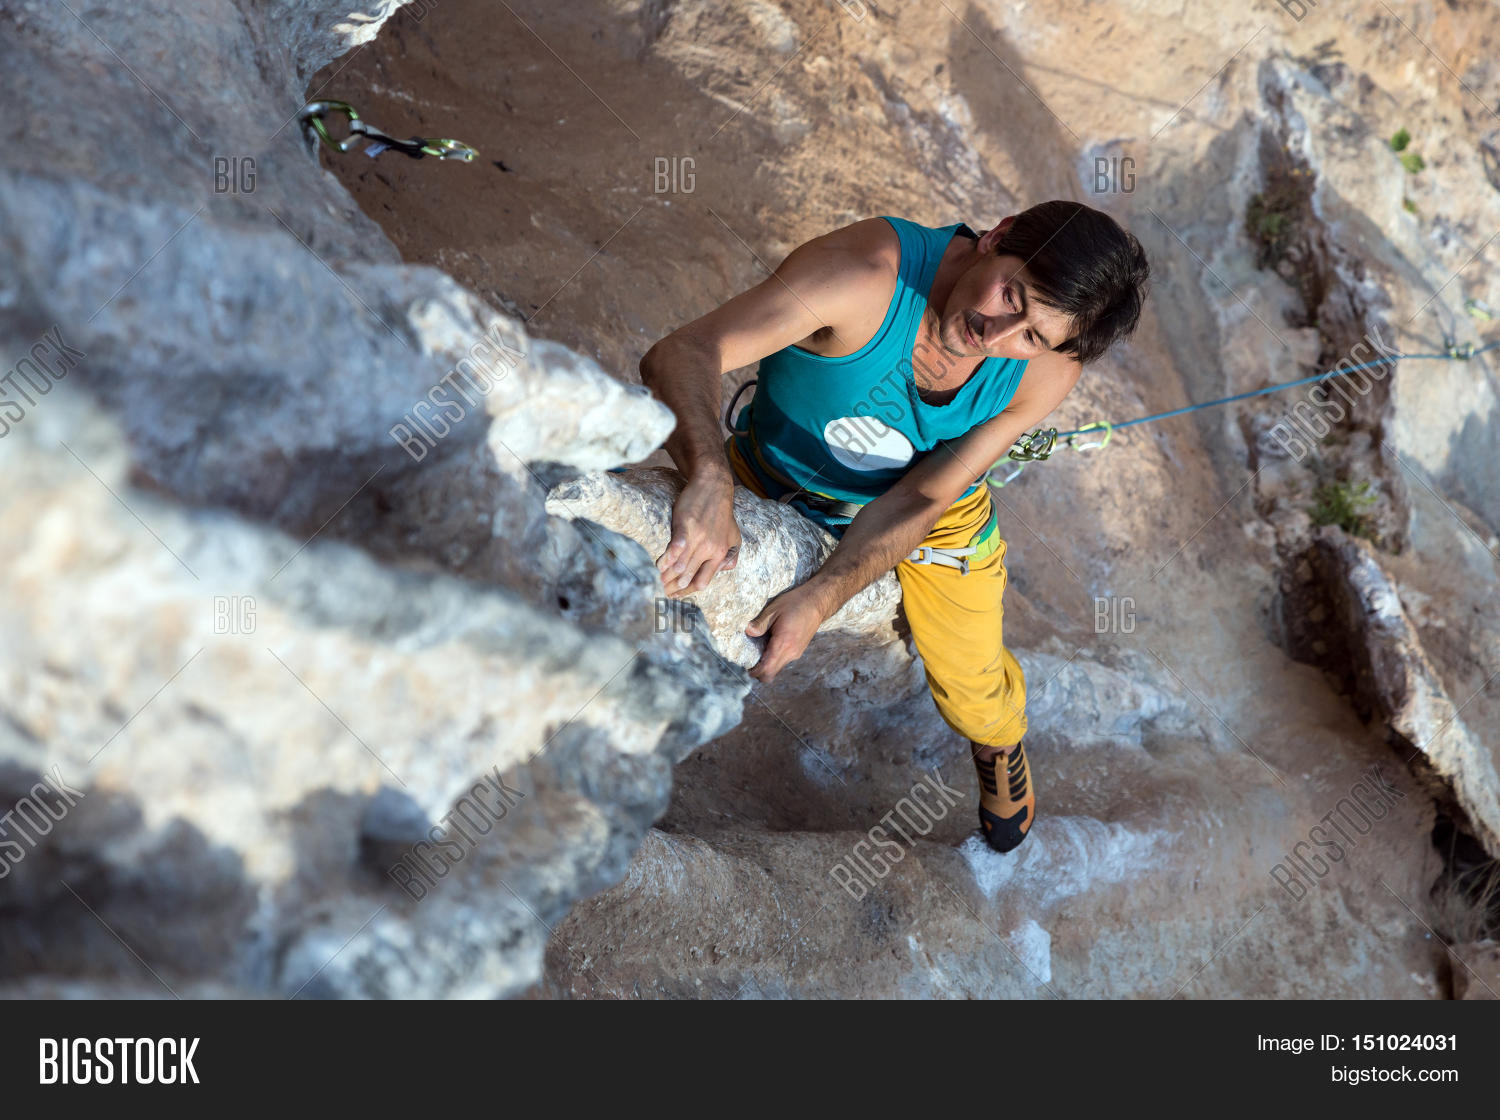 Top View of Mature Male Extreme Climber in bright sportive Clothing hanging  on unusual shaped Rock